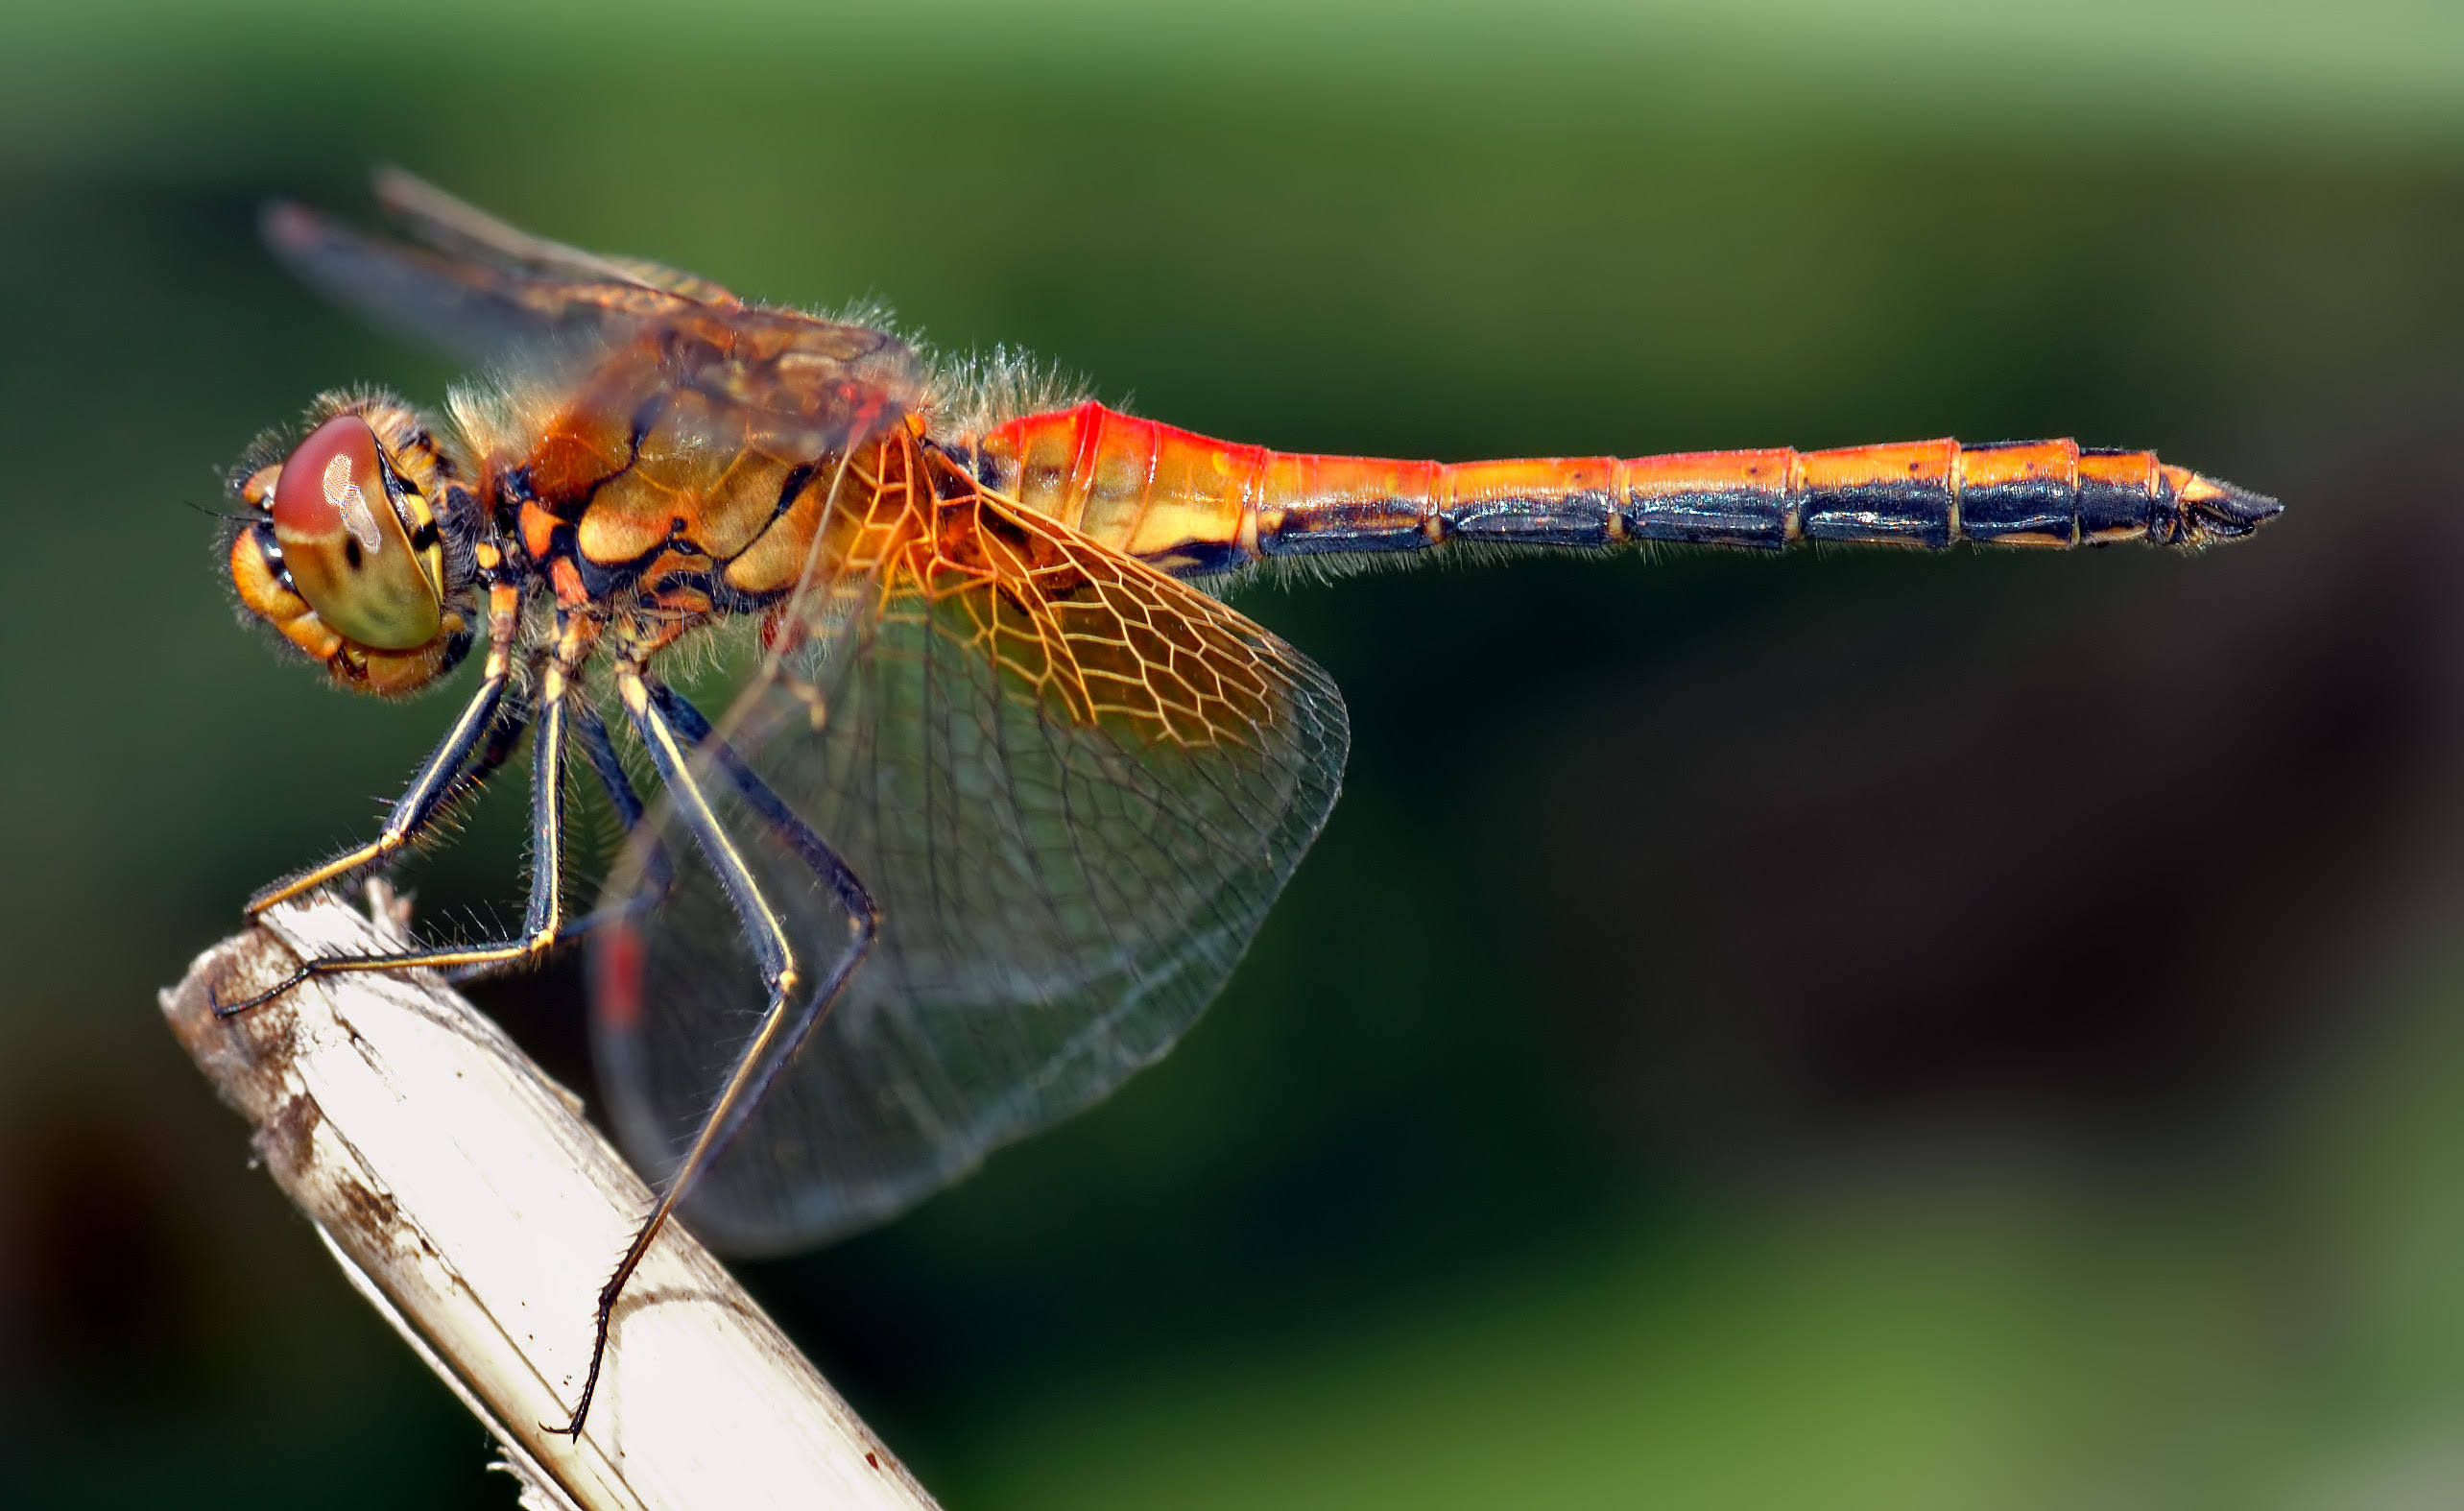 http://upload.wikimedia.org/wikipedia/commons/0/03/Sympetrum_flaveolum_-_side_%28aka%29.jpg